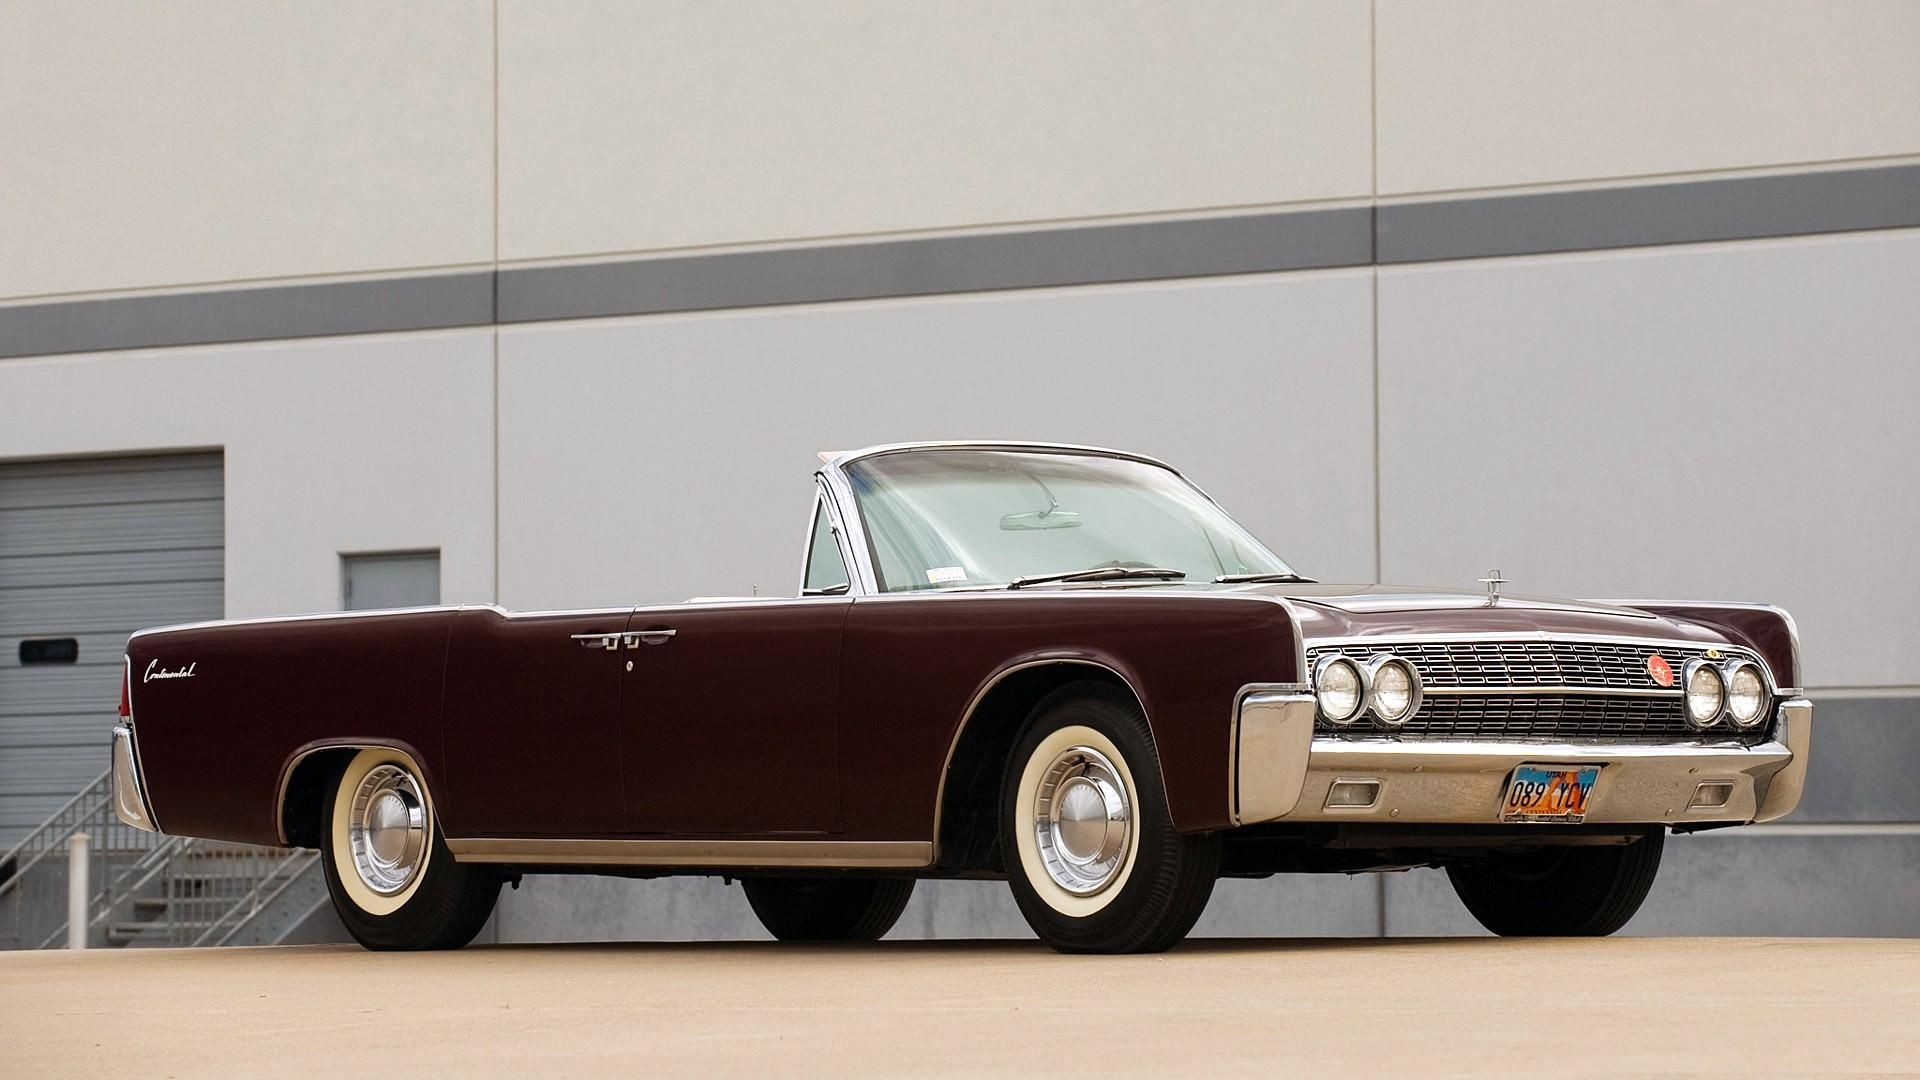 Astonishing 1962 Lincoln Continental Car Pictures For Pc Pin Hd